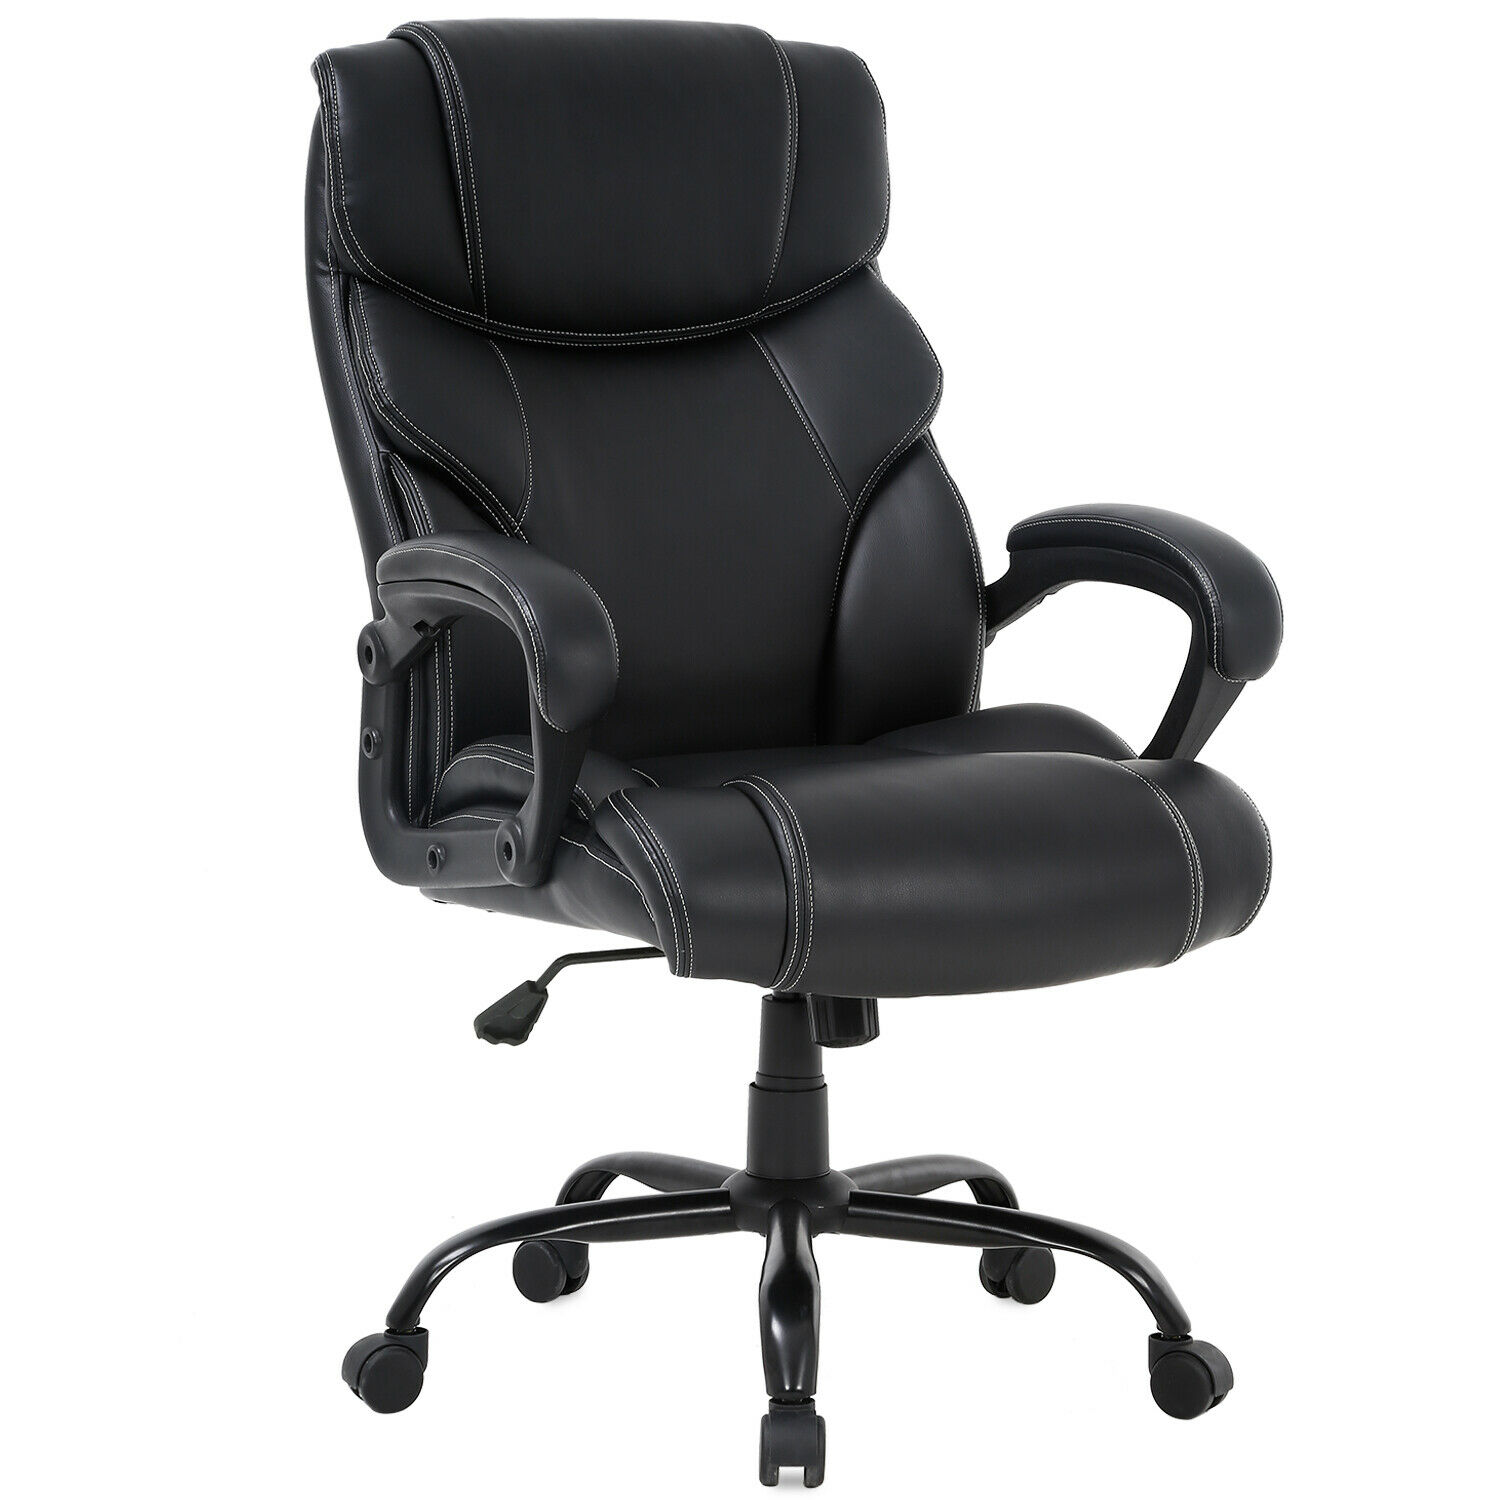 Groovy Big Tall Office Chair 400Lbs Wide Seat Ergonomic Desk Chair With Lumbar Support Download Free Architecture Designs Viewormadebymaigaardcom